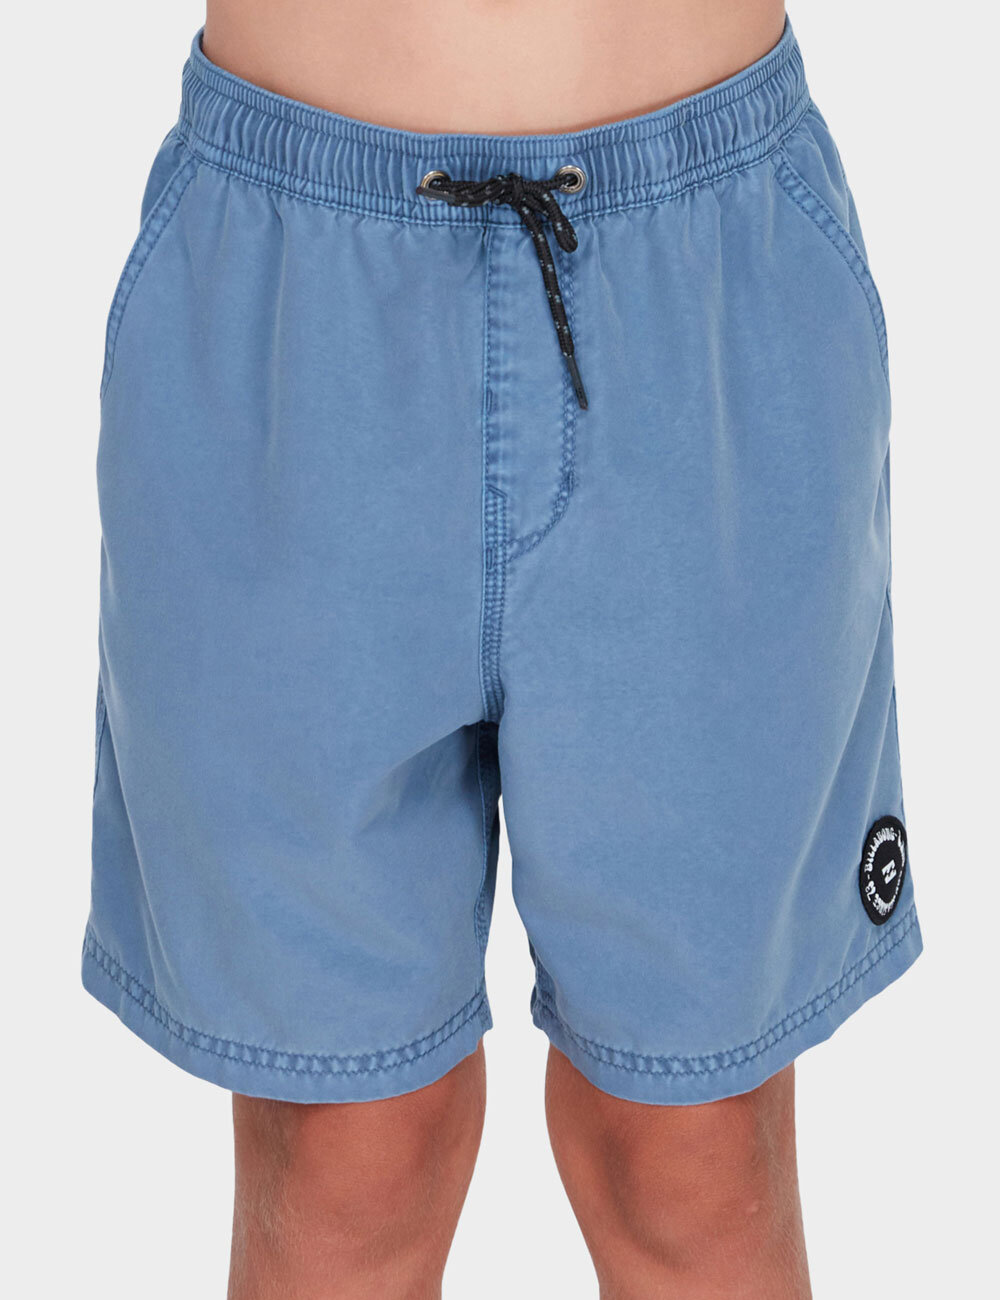 4e2dc71be4 BOYS ALL DAY OVERDYE LAYBACK SHORT - Boy's Clothing   Surf Clothing &  Streetwear   Children & Toddlers - BILLABONG S18